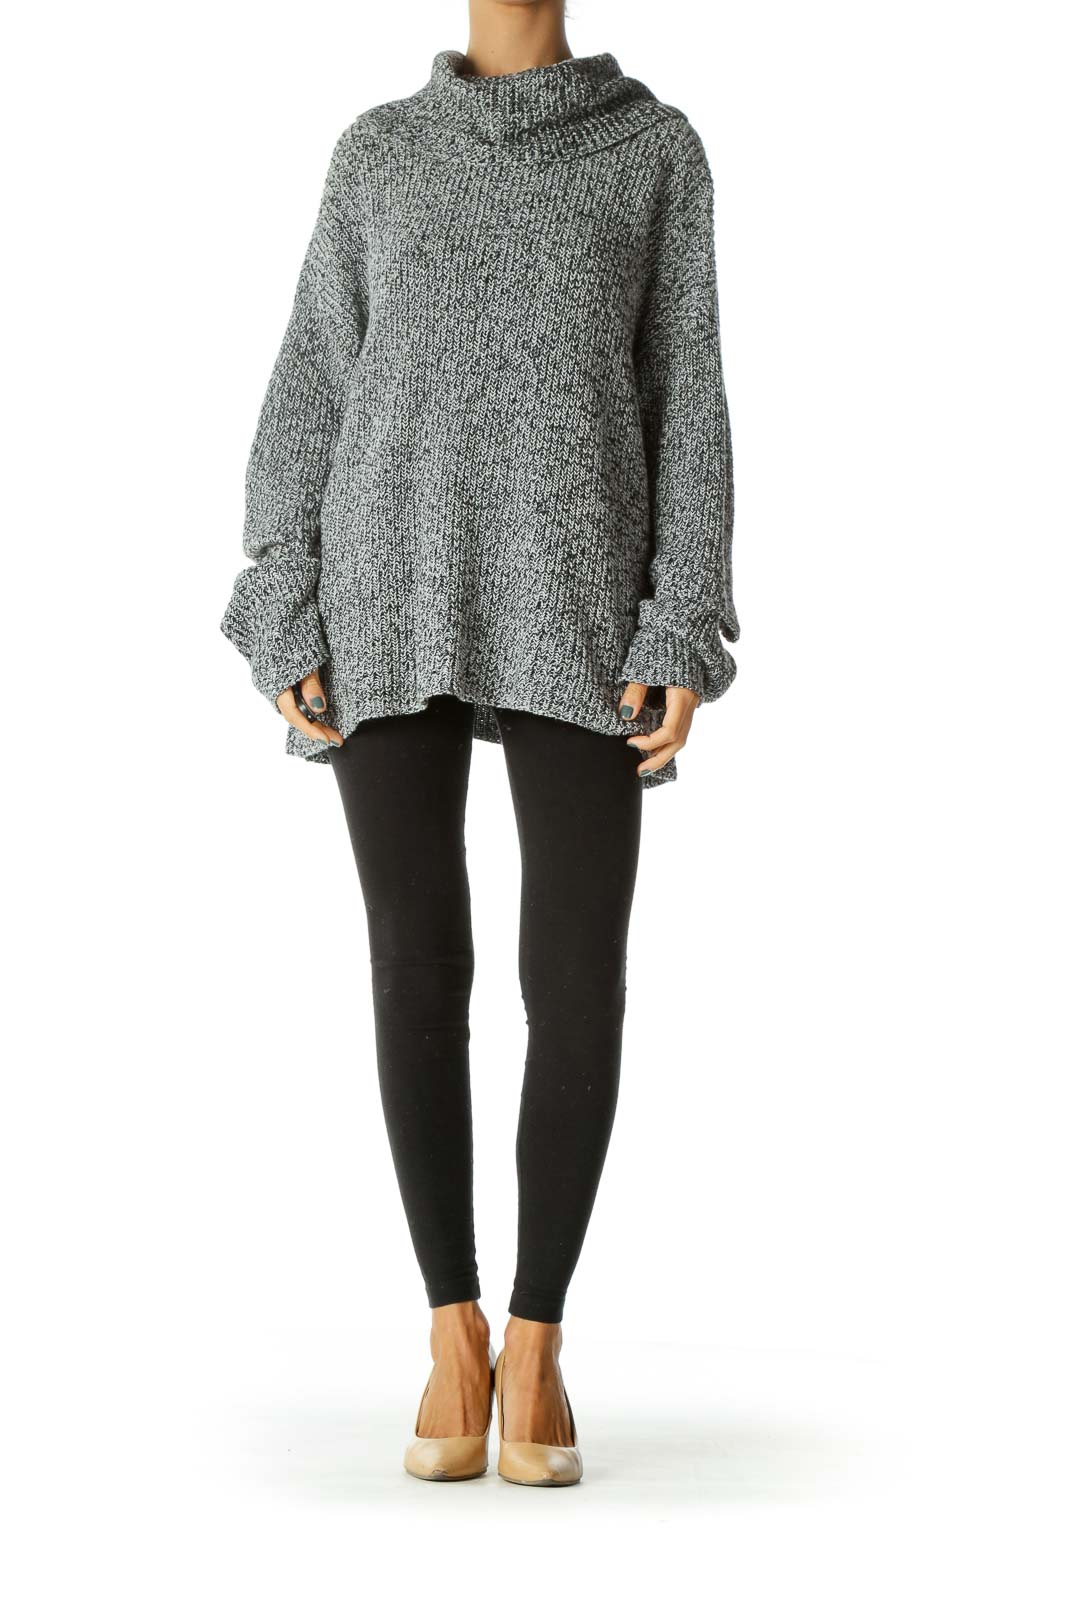 Black White Knit Turtle Neck Long Sleeve Arm Cut Out Sweater